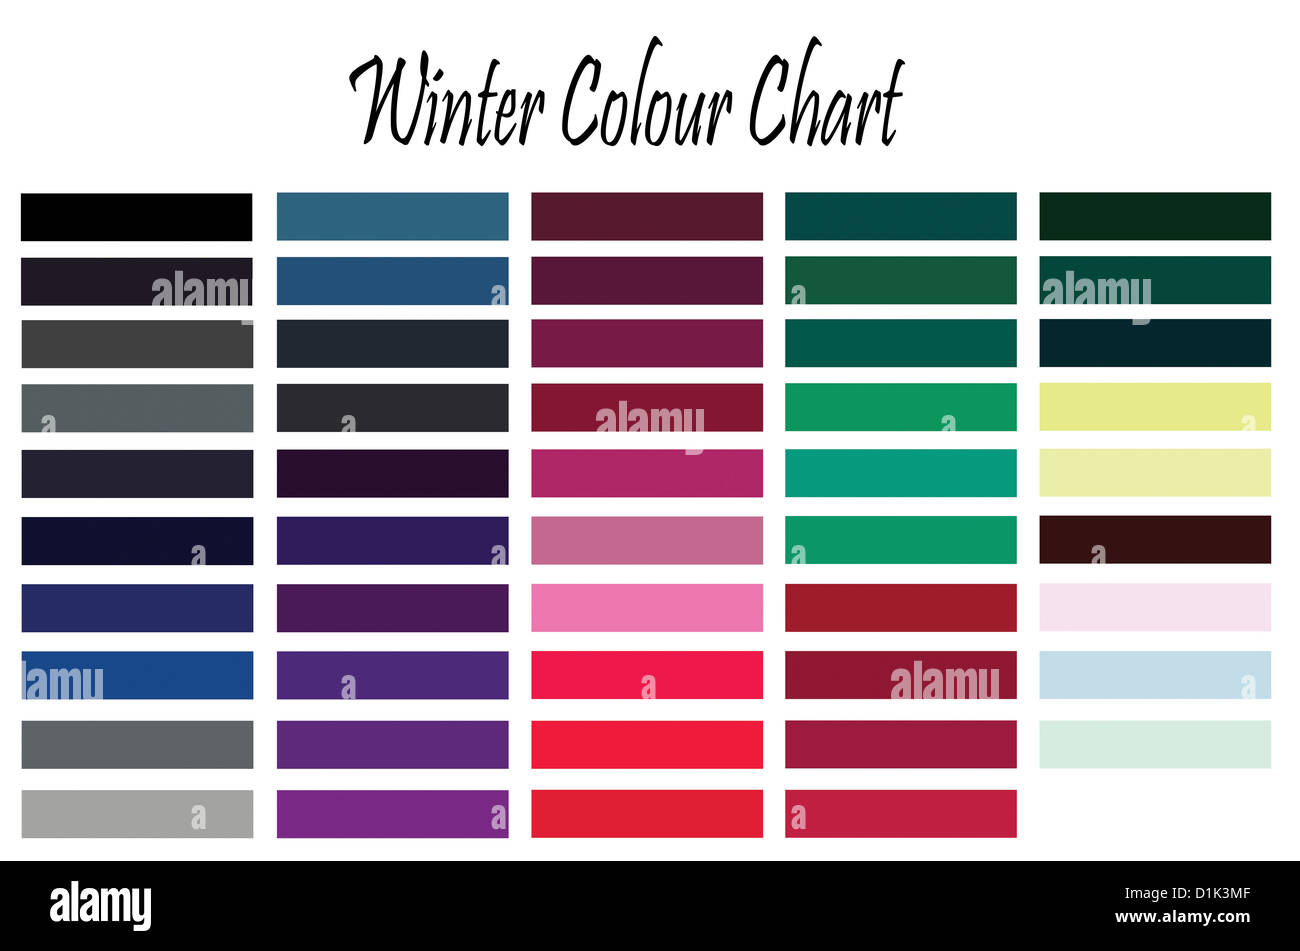 Color chart for winter type woman for clothes and makeup stock color chart for winter type woman for clothes and makeup nvjuhfo Image collections